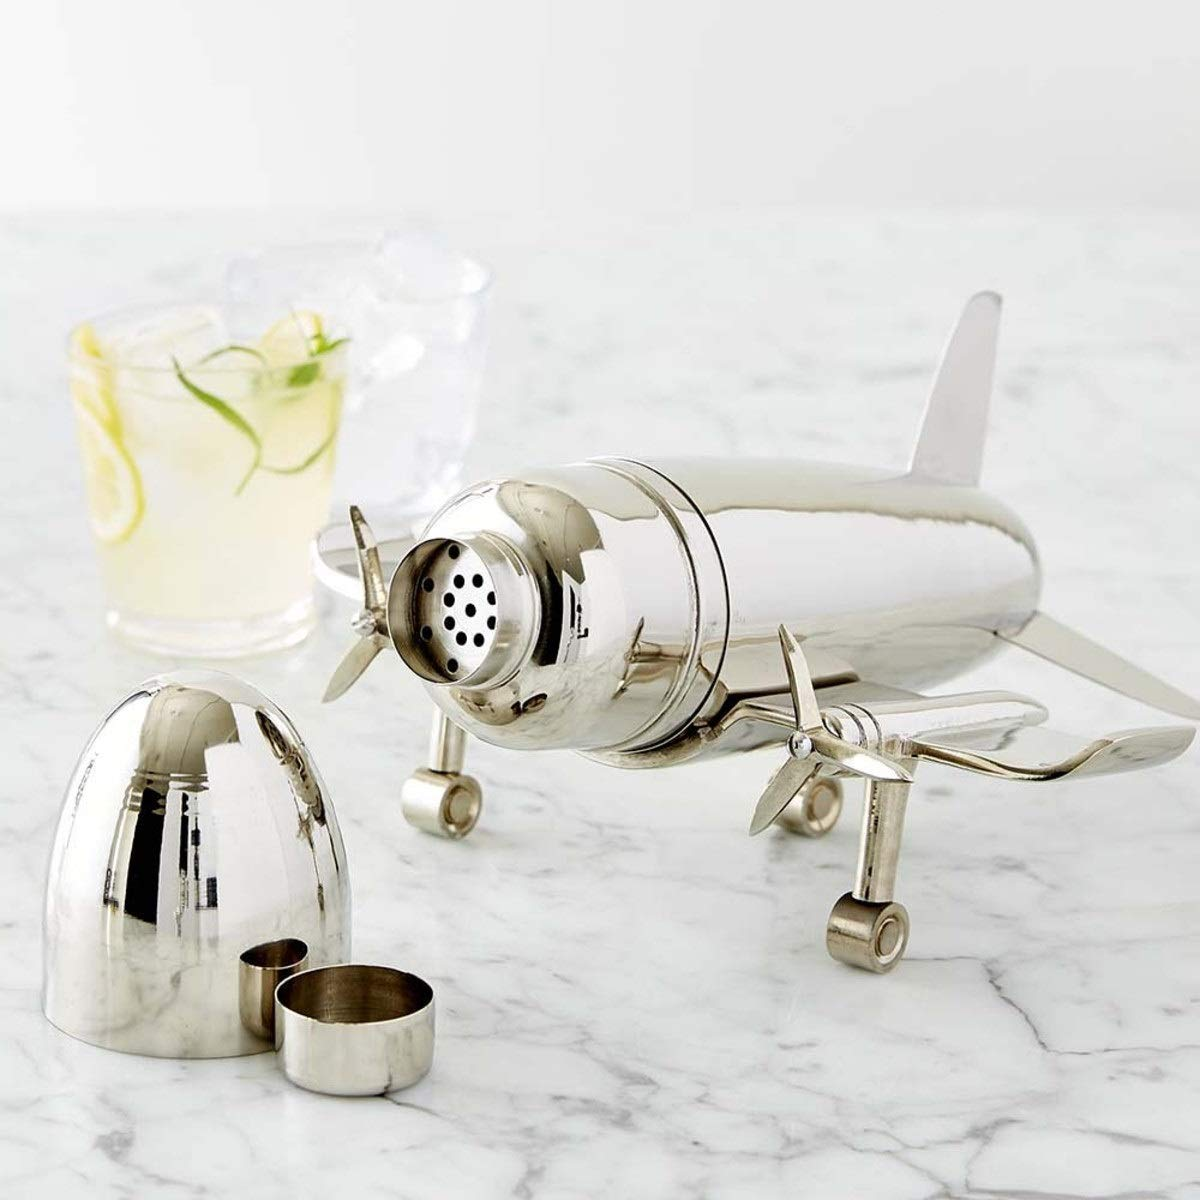 Le'raze Airplane Cocktail Shaker, Premium 24 Ounce Bar Shaker With Stand, Airplane Art Bar Drink Shaker, Aviation Bartender Mixer, Ideal For Flying Bartender, Pilot Gift, Chrome Airplane Decor by Le'raze